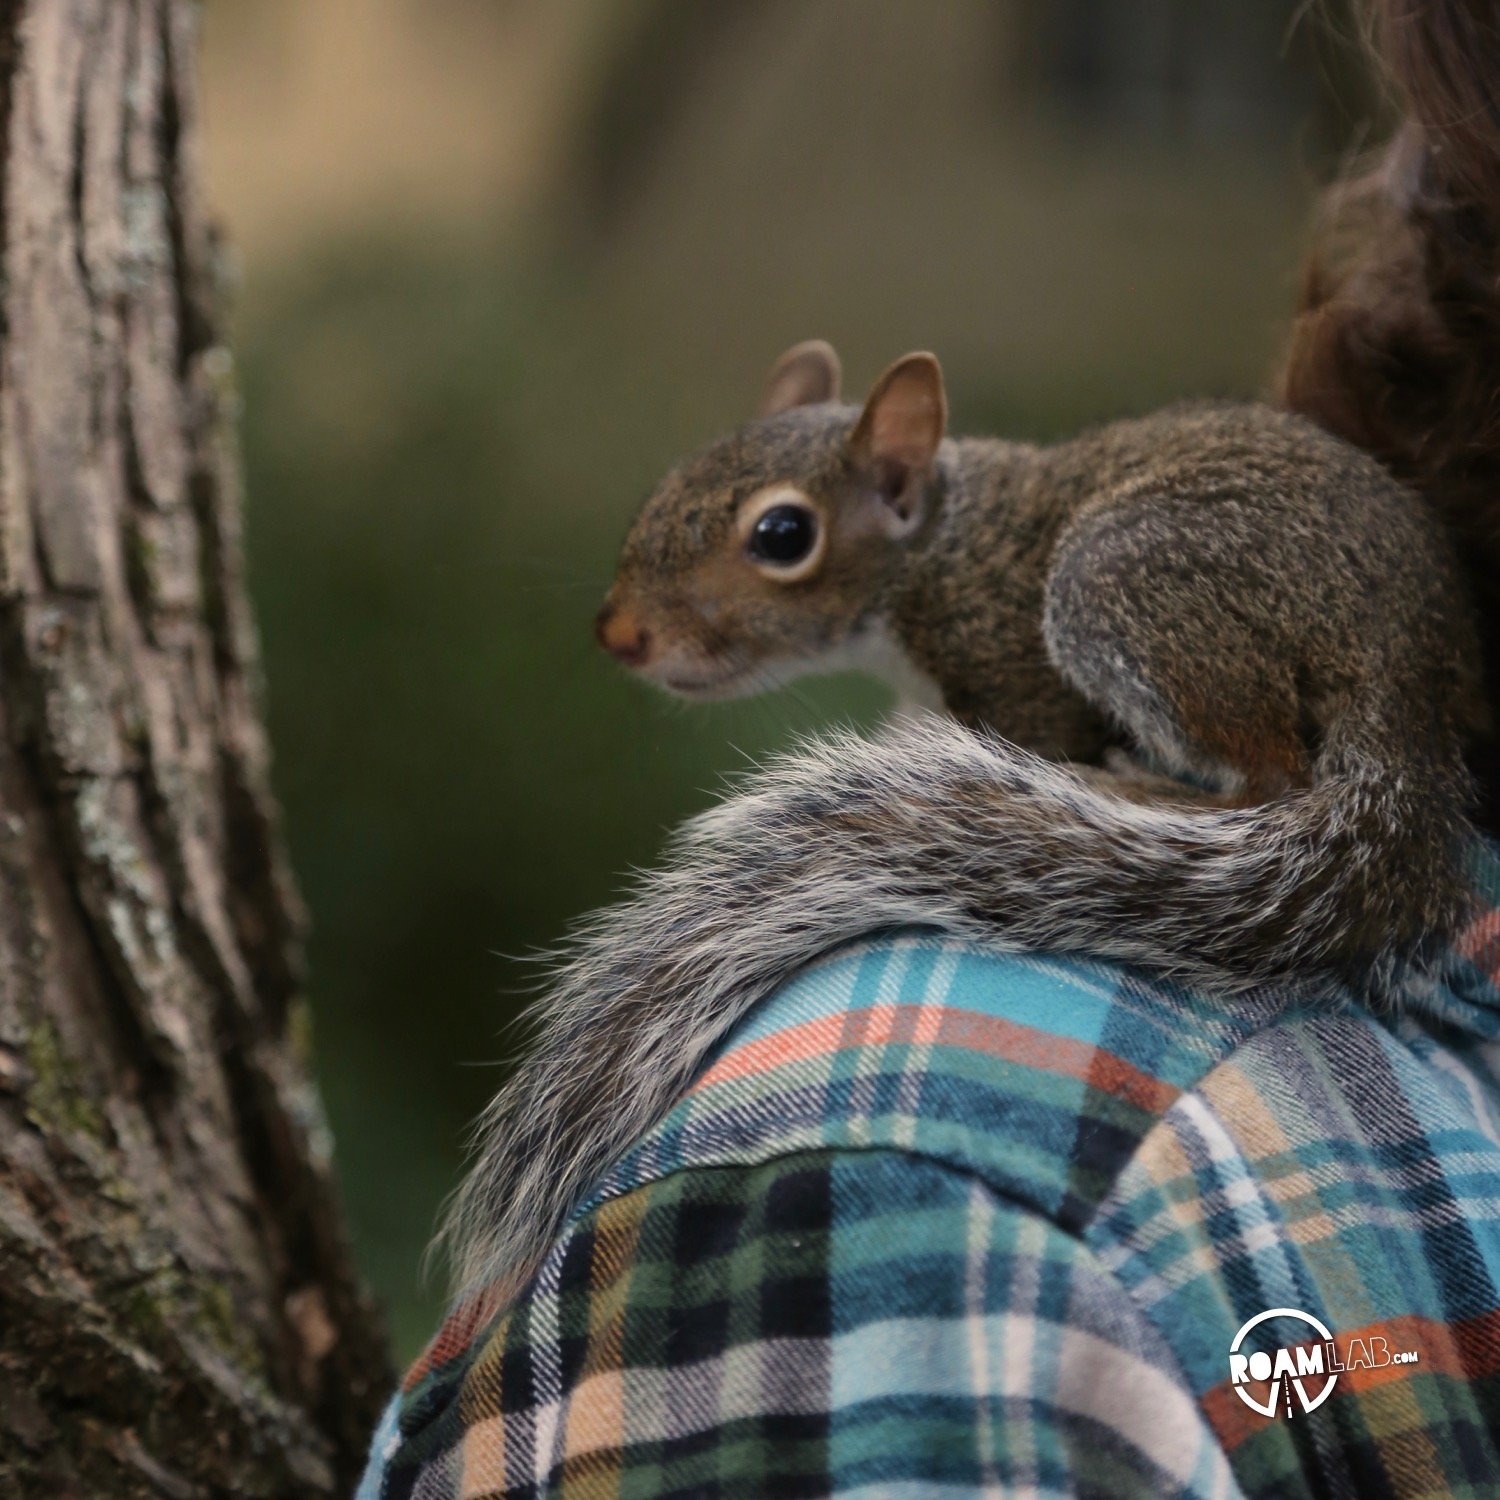 A lot of people have asked us about how we got so close to the cute couple of squirrels that have been showing up a lot on our Instagram Feed. In this 5 step series, I'll tell the tale of Tenzing, Hillary, Cowboy, and myself and the rollercoaster of experiences from rehabilitation to release.